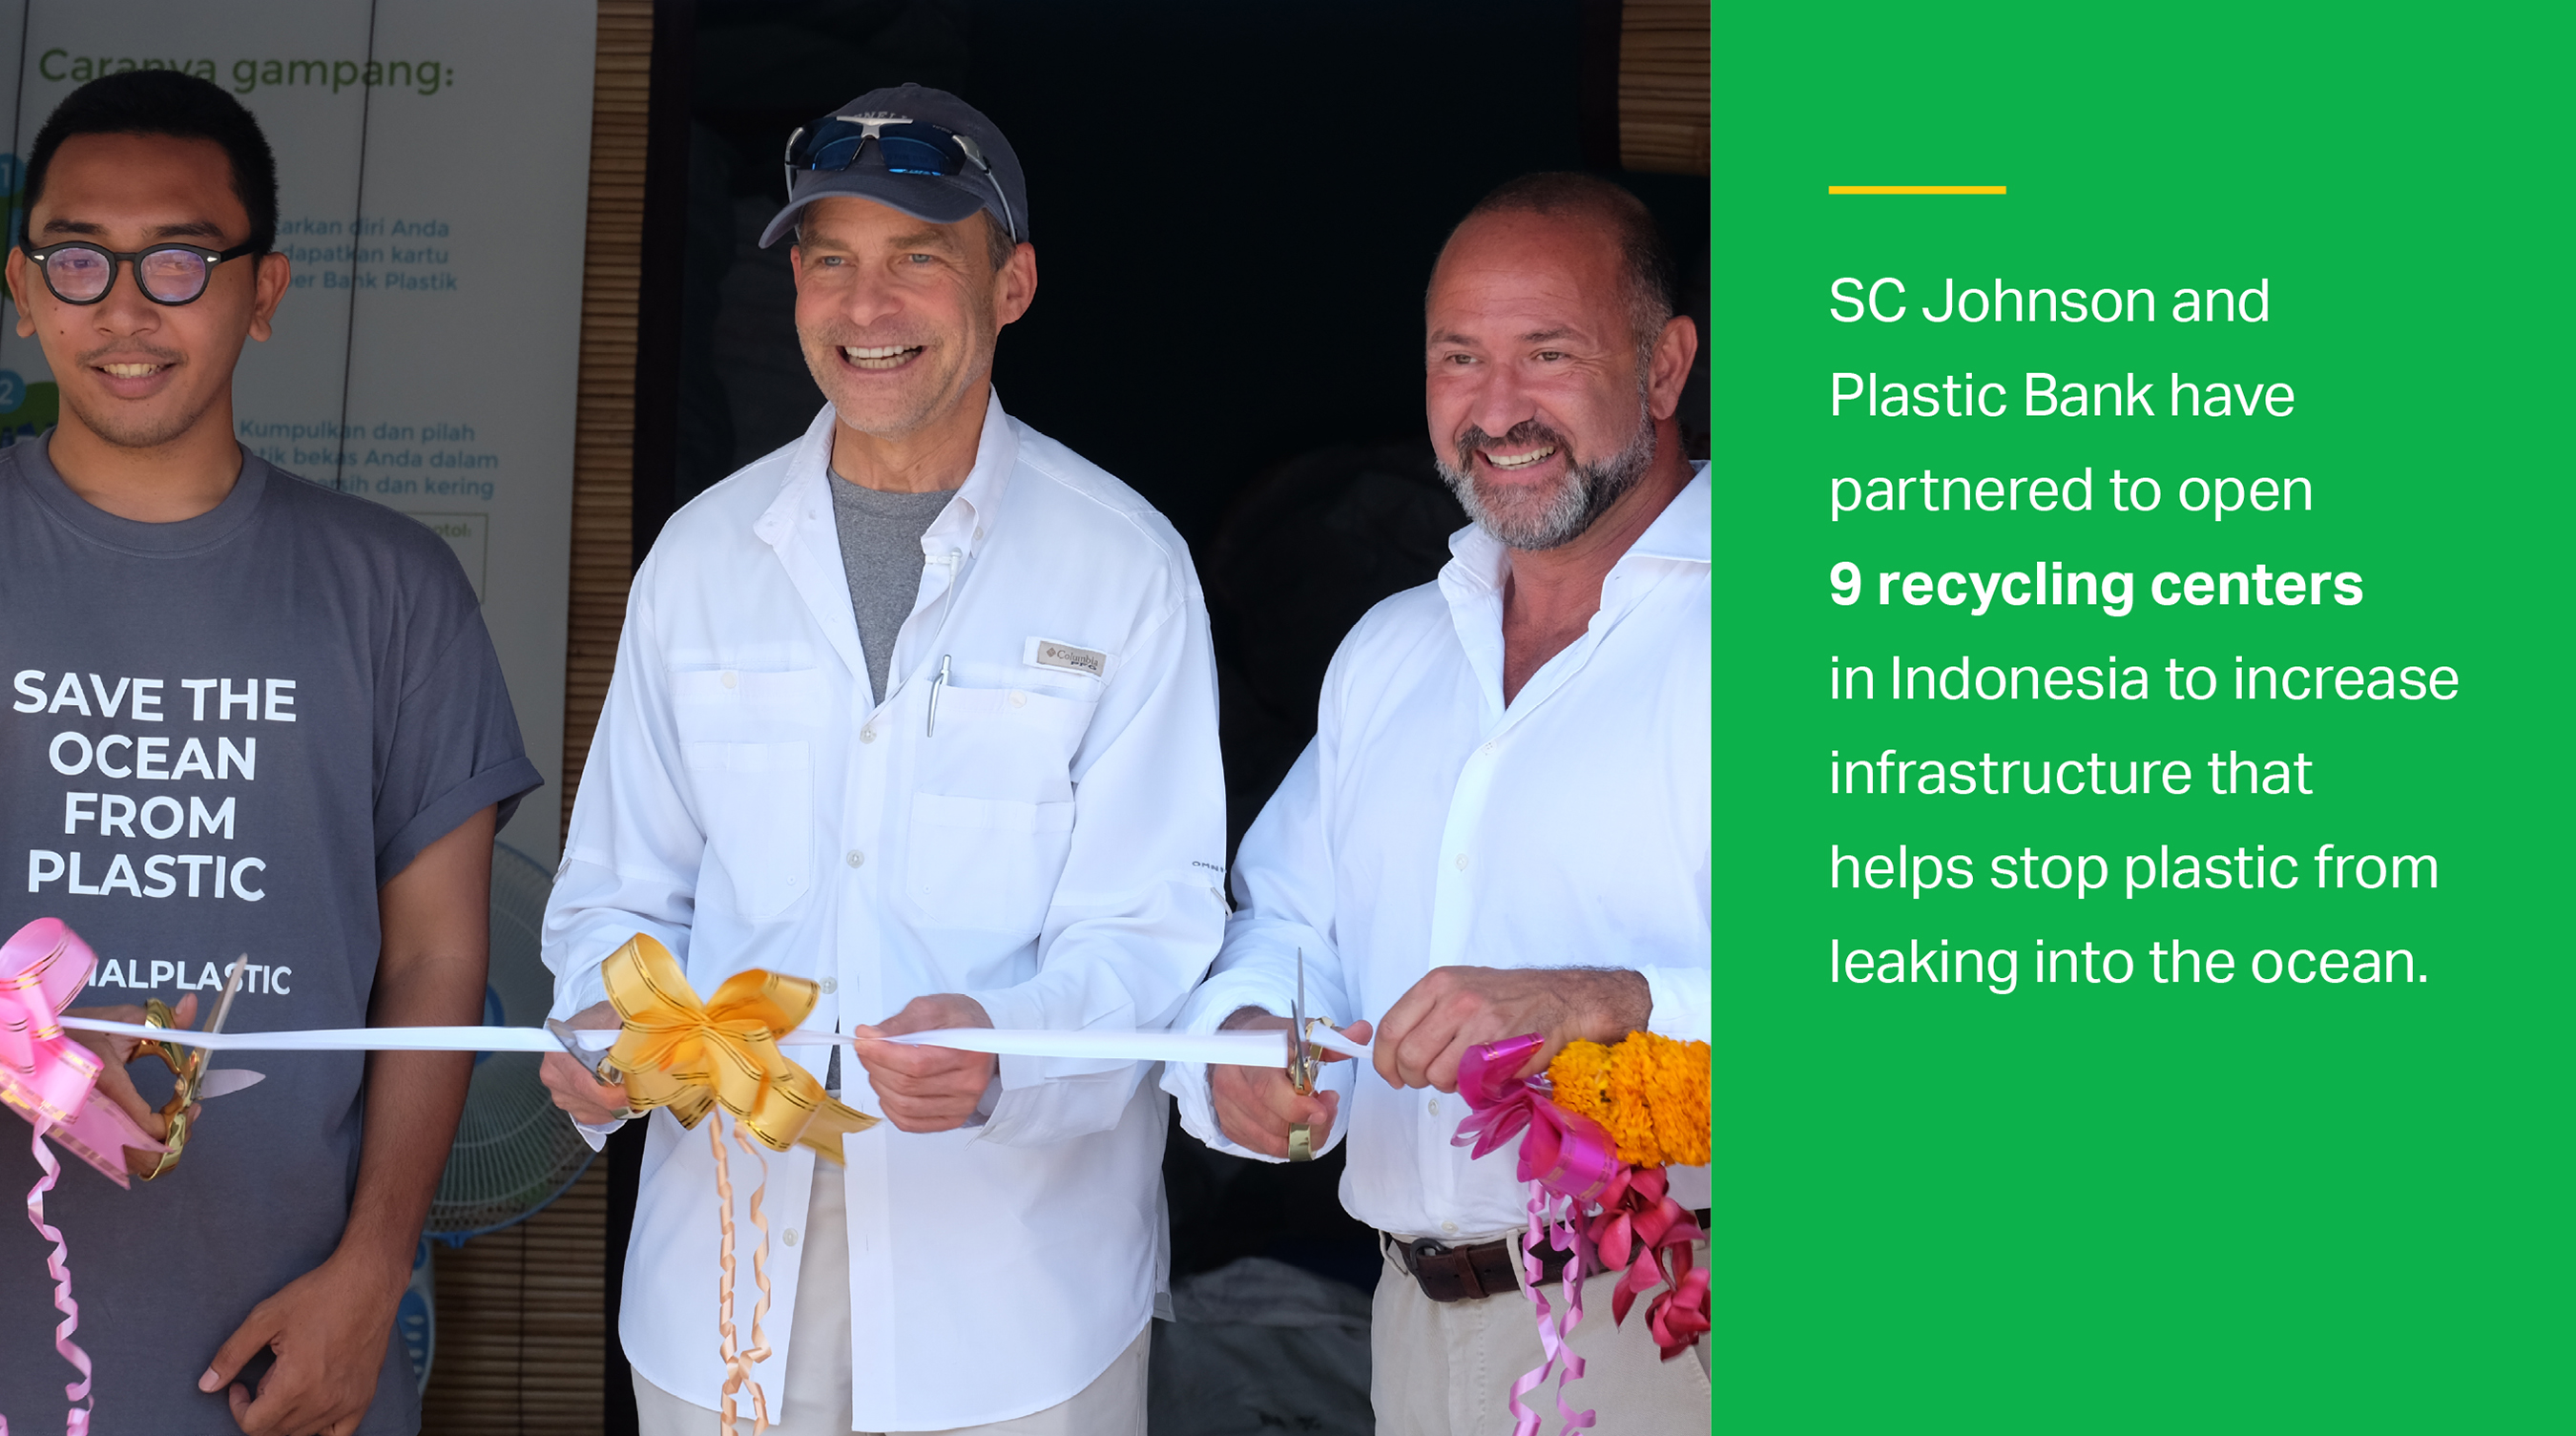 SC Johnson and Plastic Bank are working together to combat ocean plastic.